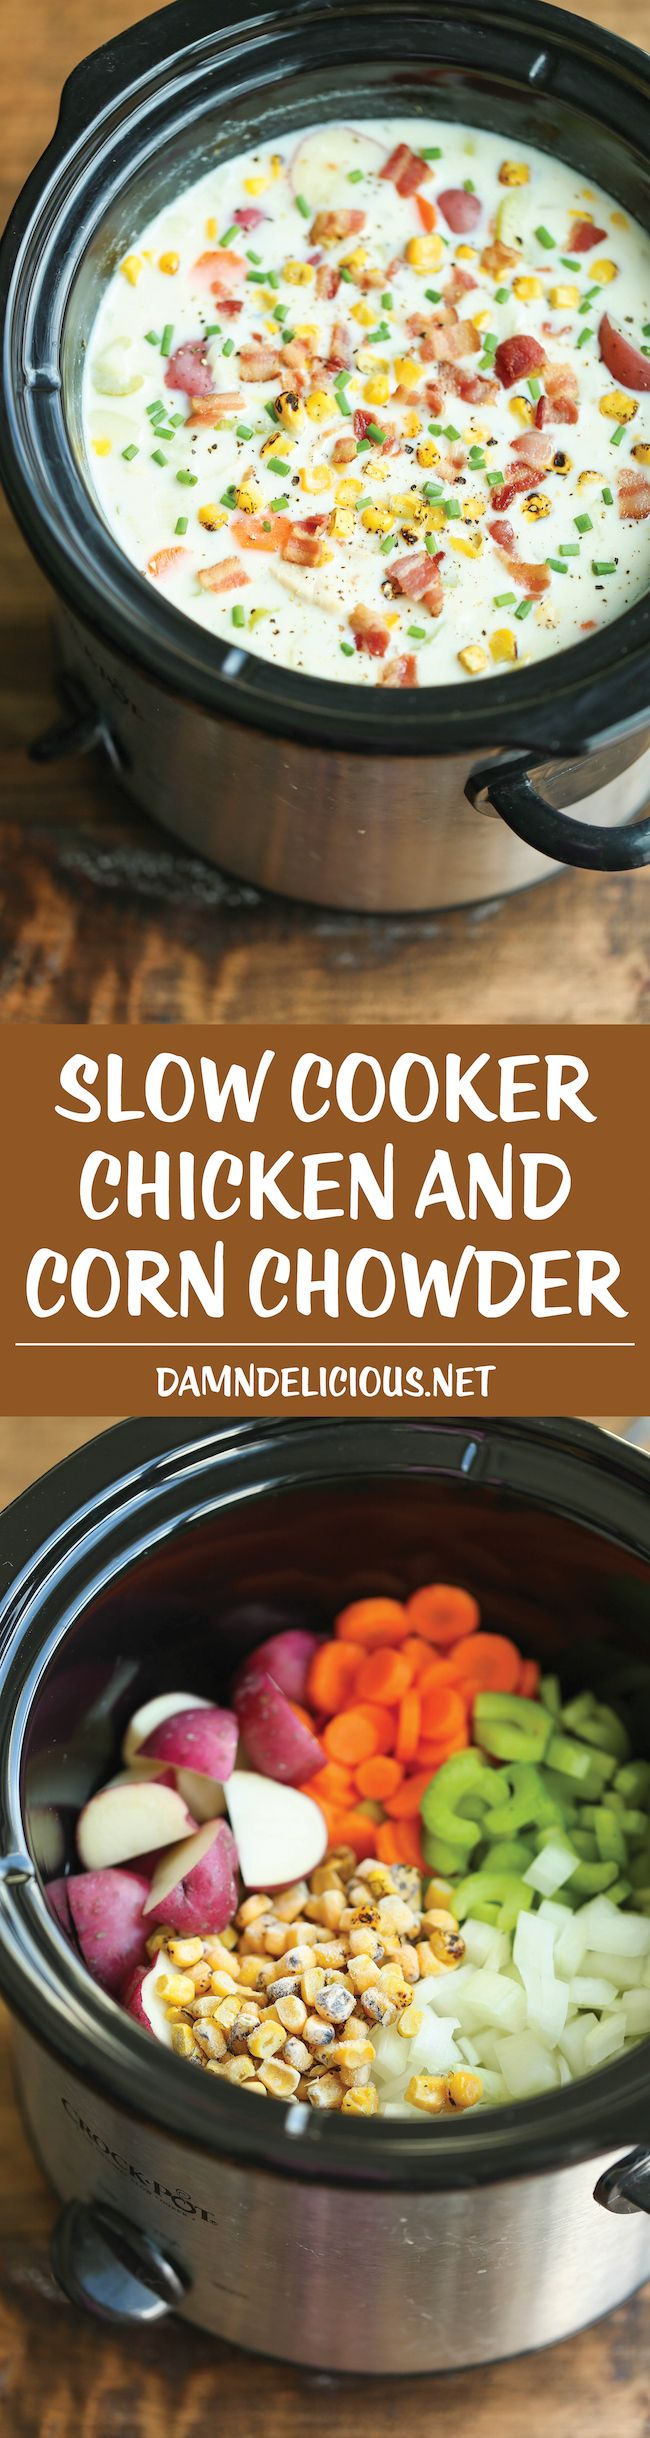 Slow Cooker Chicken and Corn Chowder – Such a hearty, comforting and CREAMY soup, made right in the cr